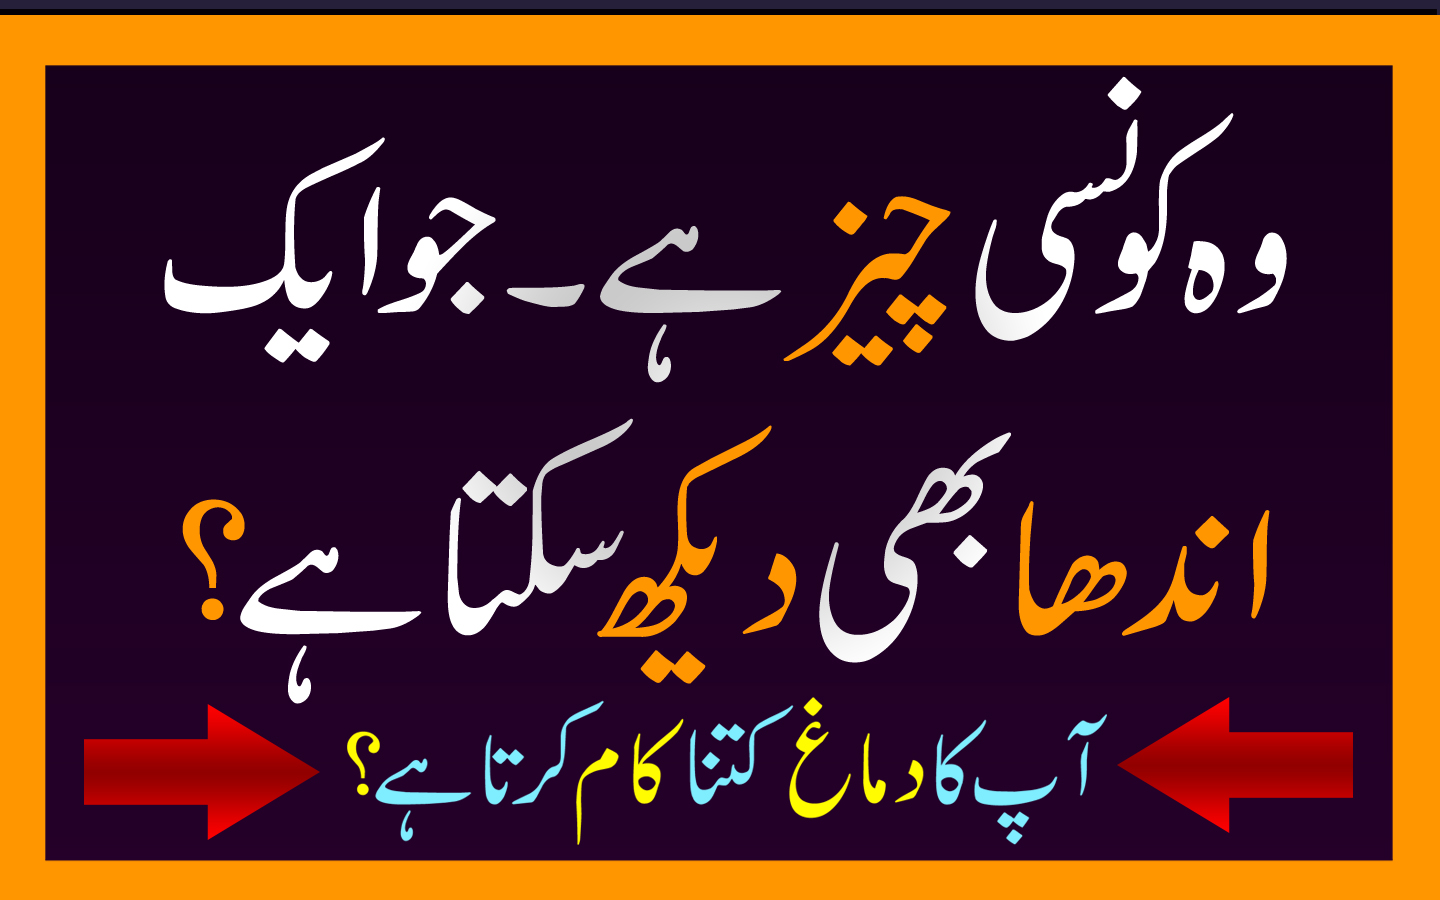 Funny questions in urdu with answers